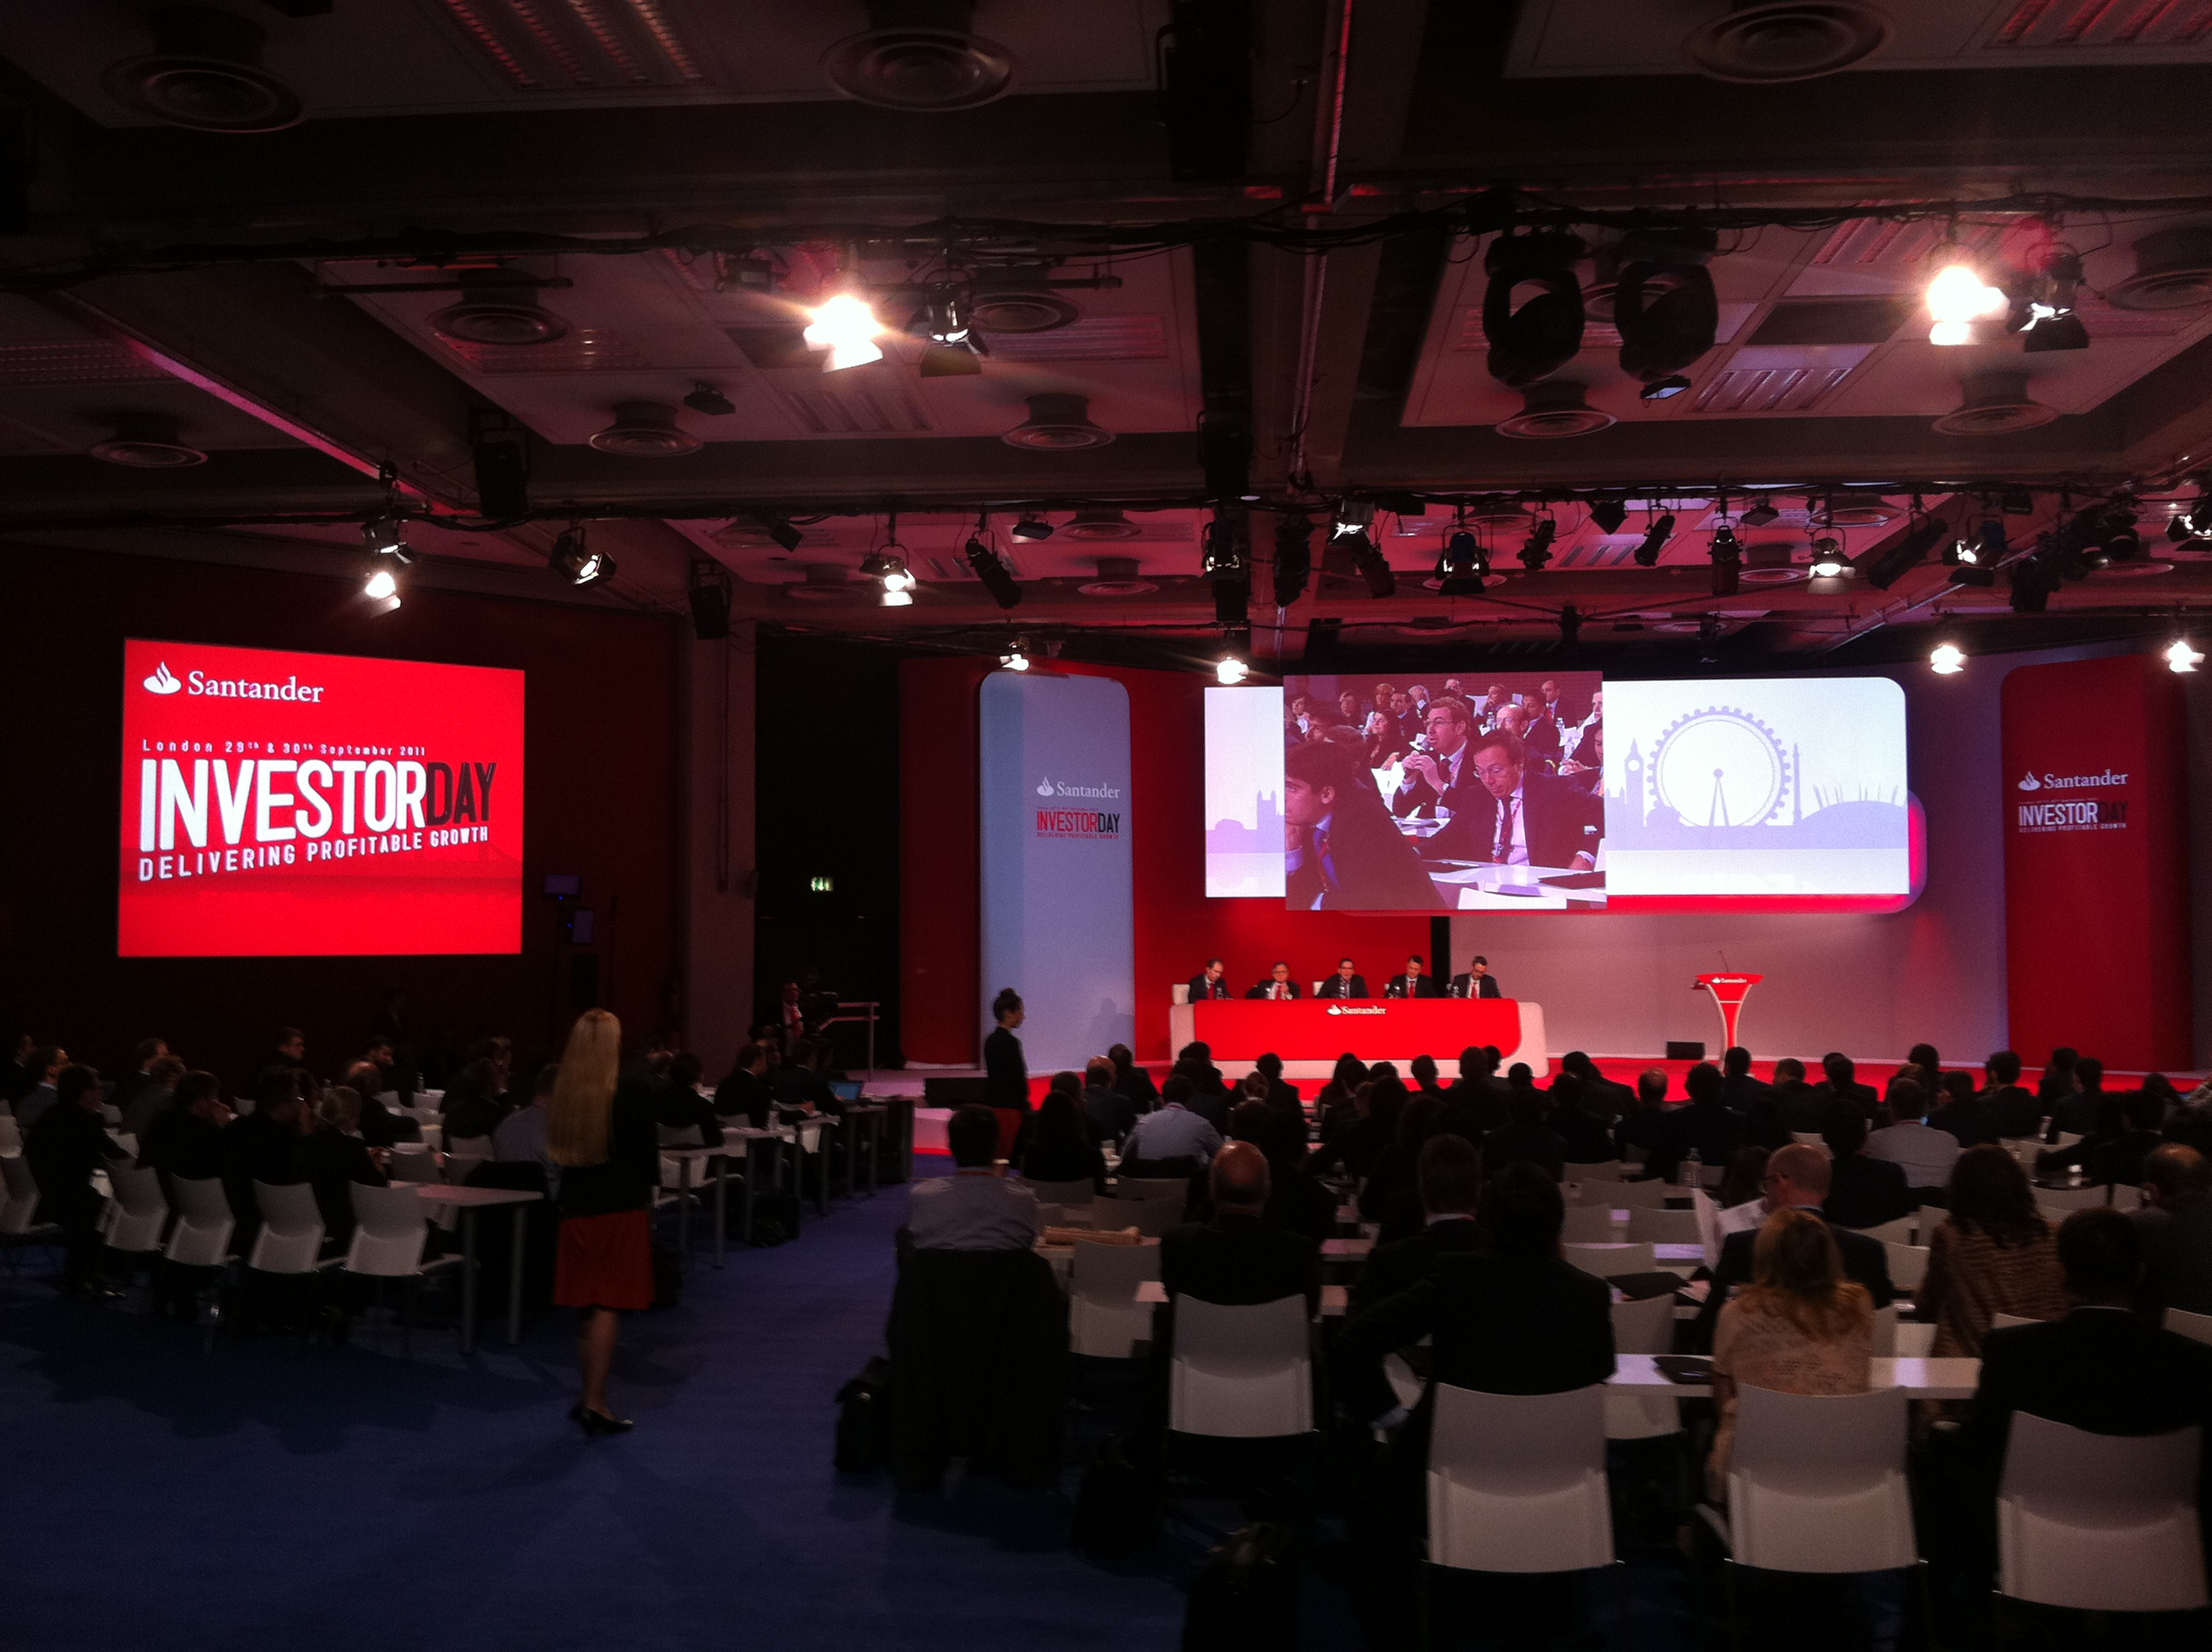 Piensa en LED material audiovisual Banco Santander invertor day